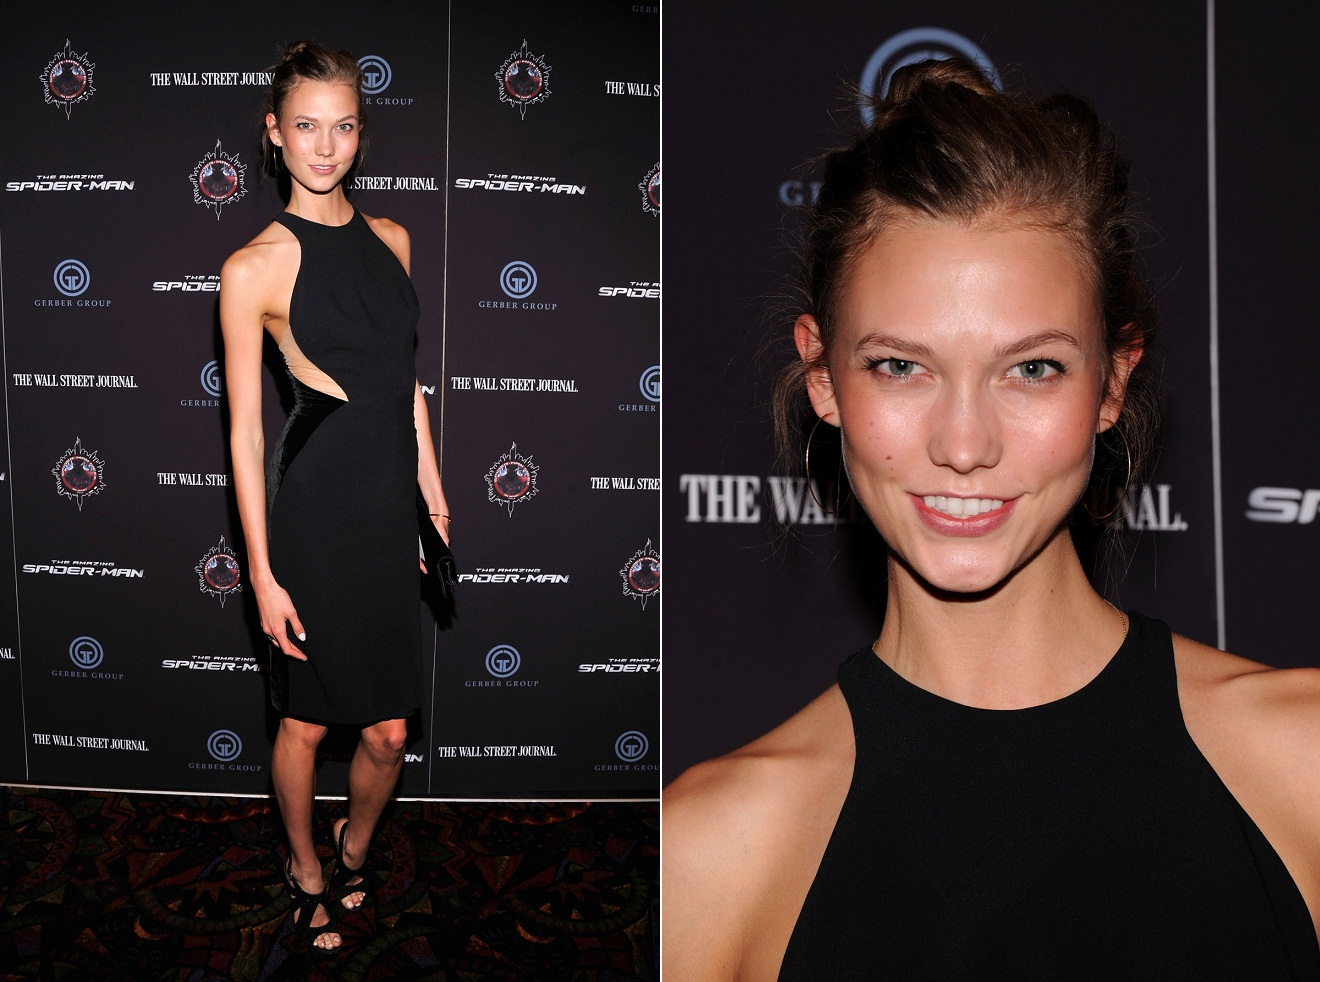 http://1.bp.blogspot.com/-y7dLKa6kkLw/T-28bUWUW2I/AAAAAAAAcy0/GMVdlVRc7kU/s1600/KARLIE-KLOSS-at-The-Amazing-Spider-man-Premiere-in-Los-Angeles-1.jpg